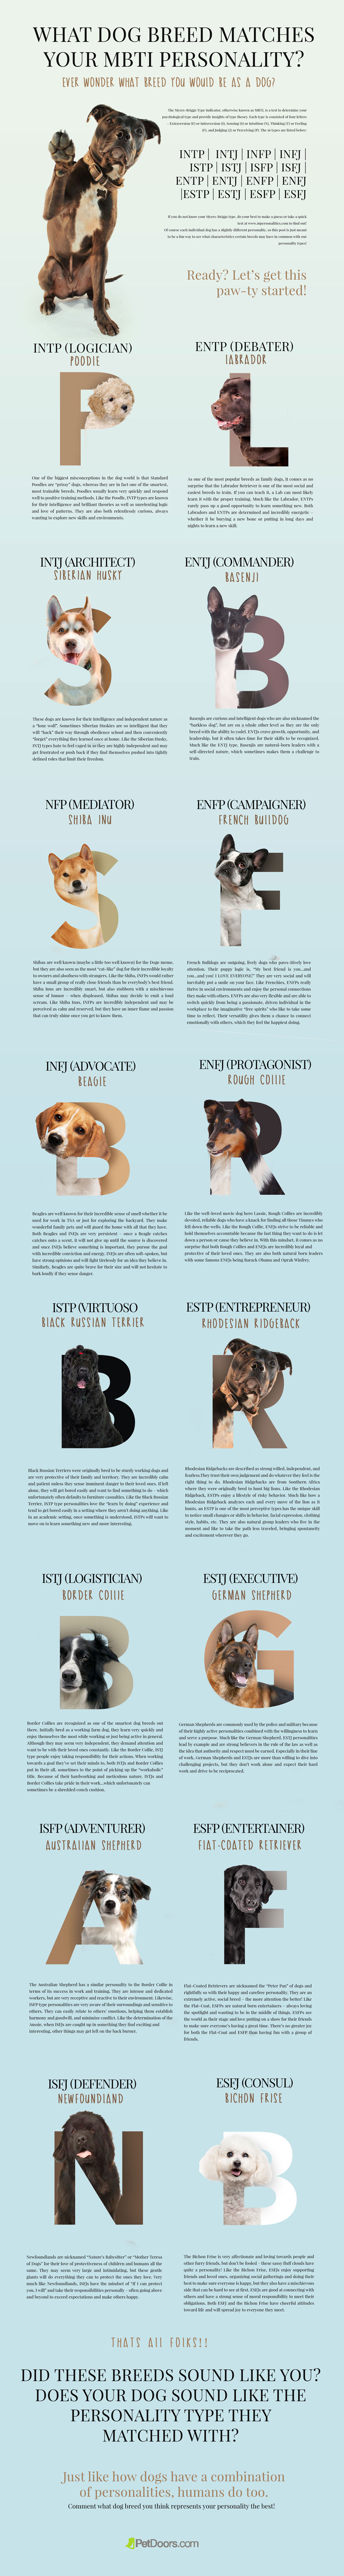 PetDoor_Infographic_MBTI_Test